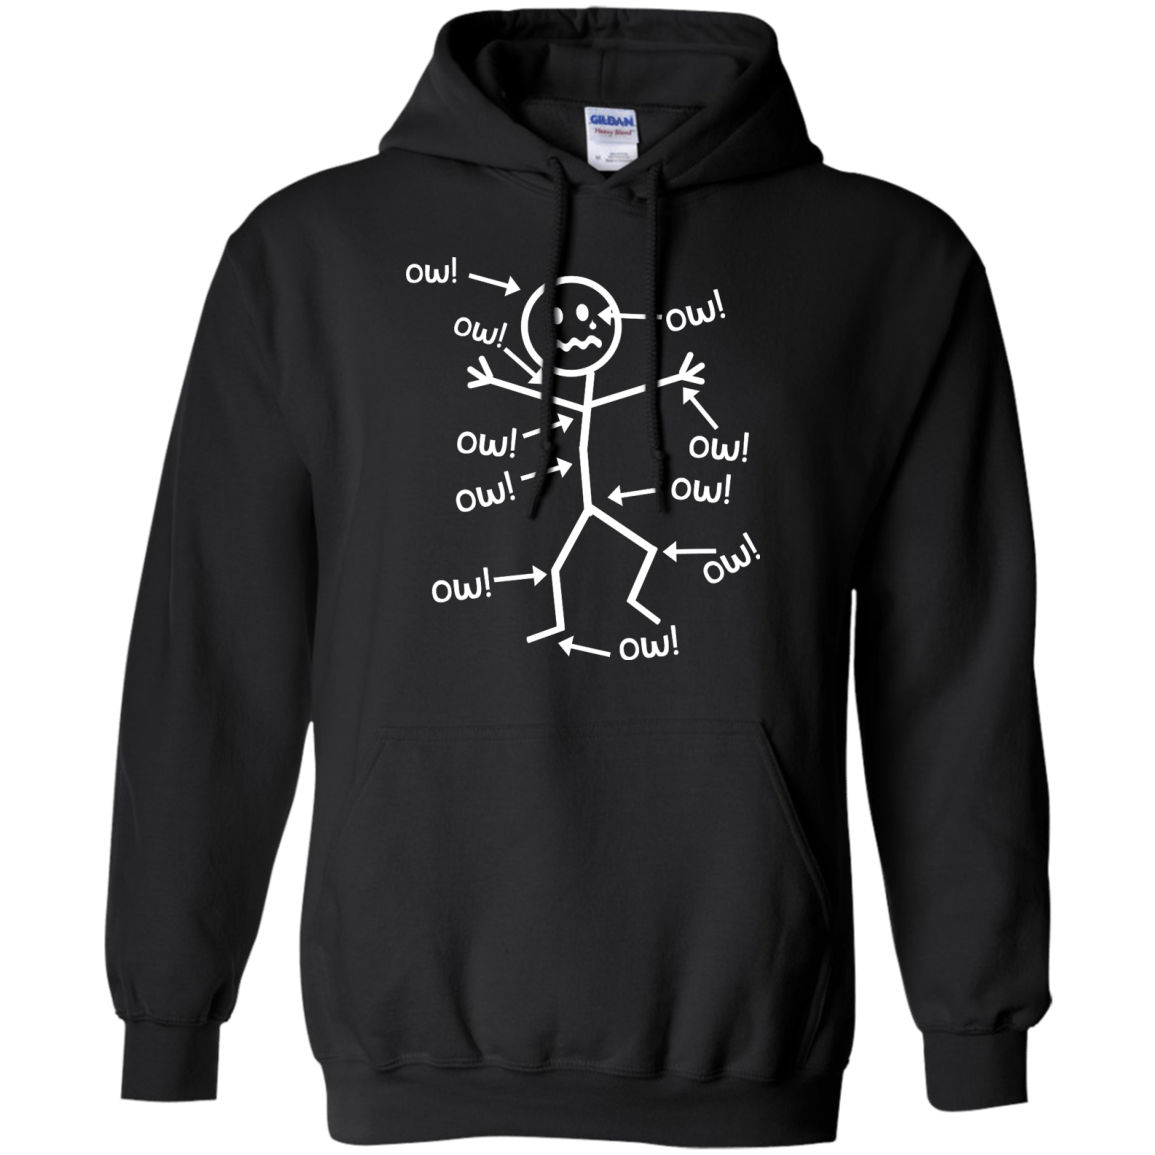 Hoodies - Ow Ow Ow Pullover Hoodie 8 Oz